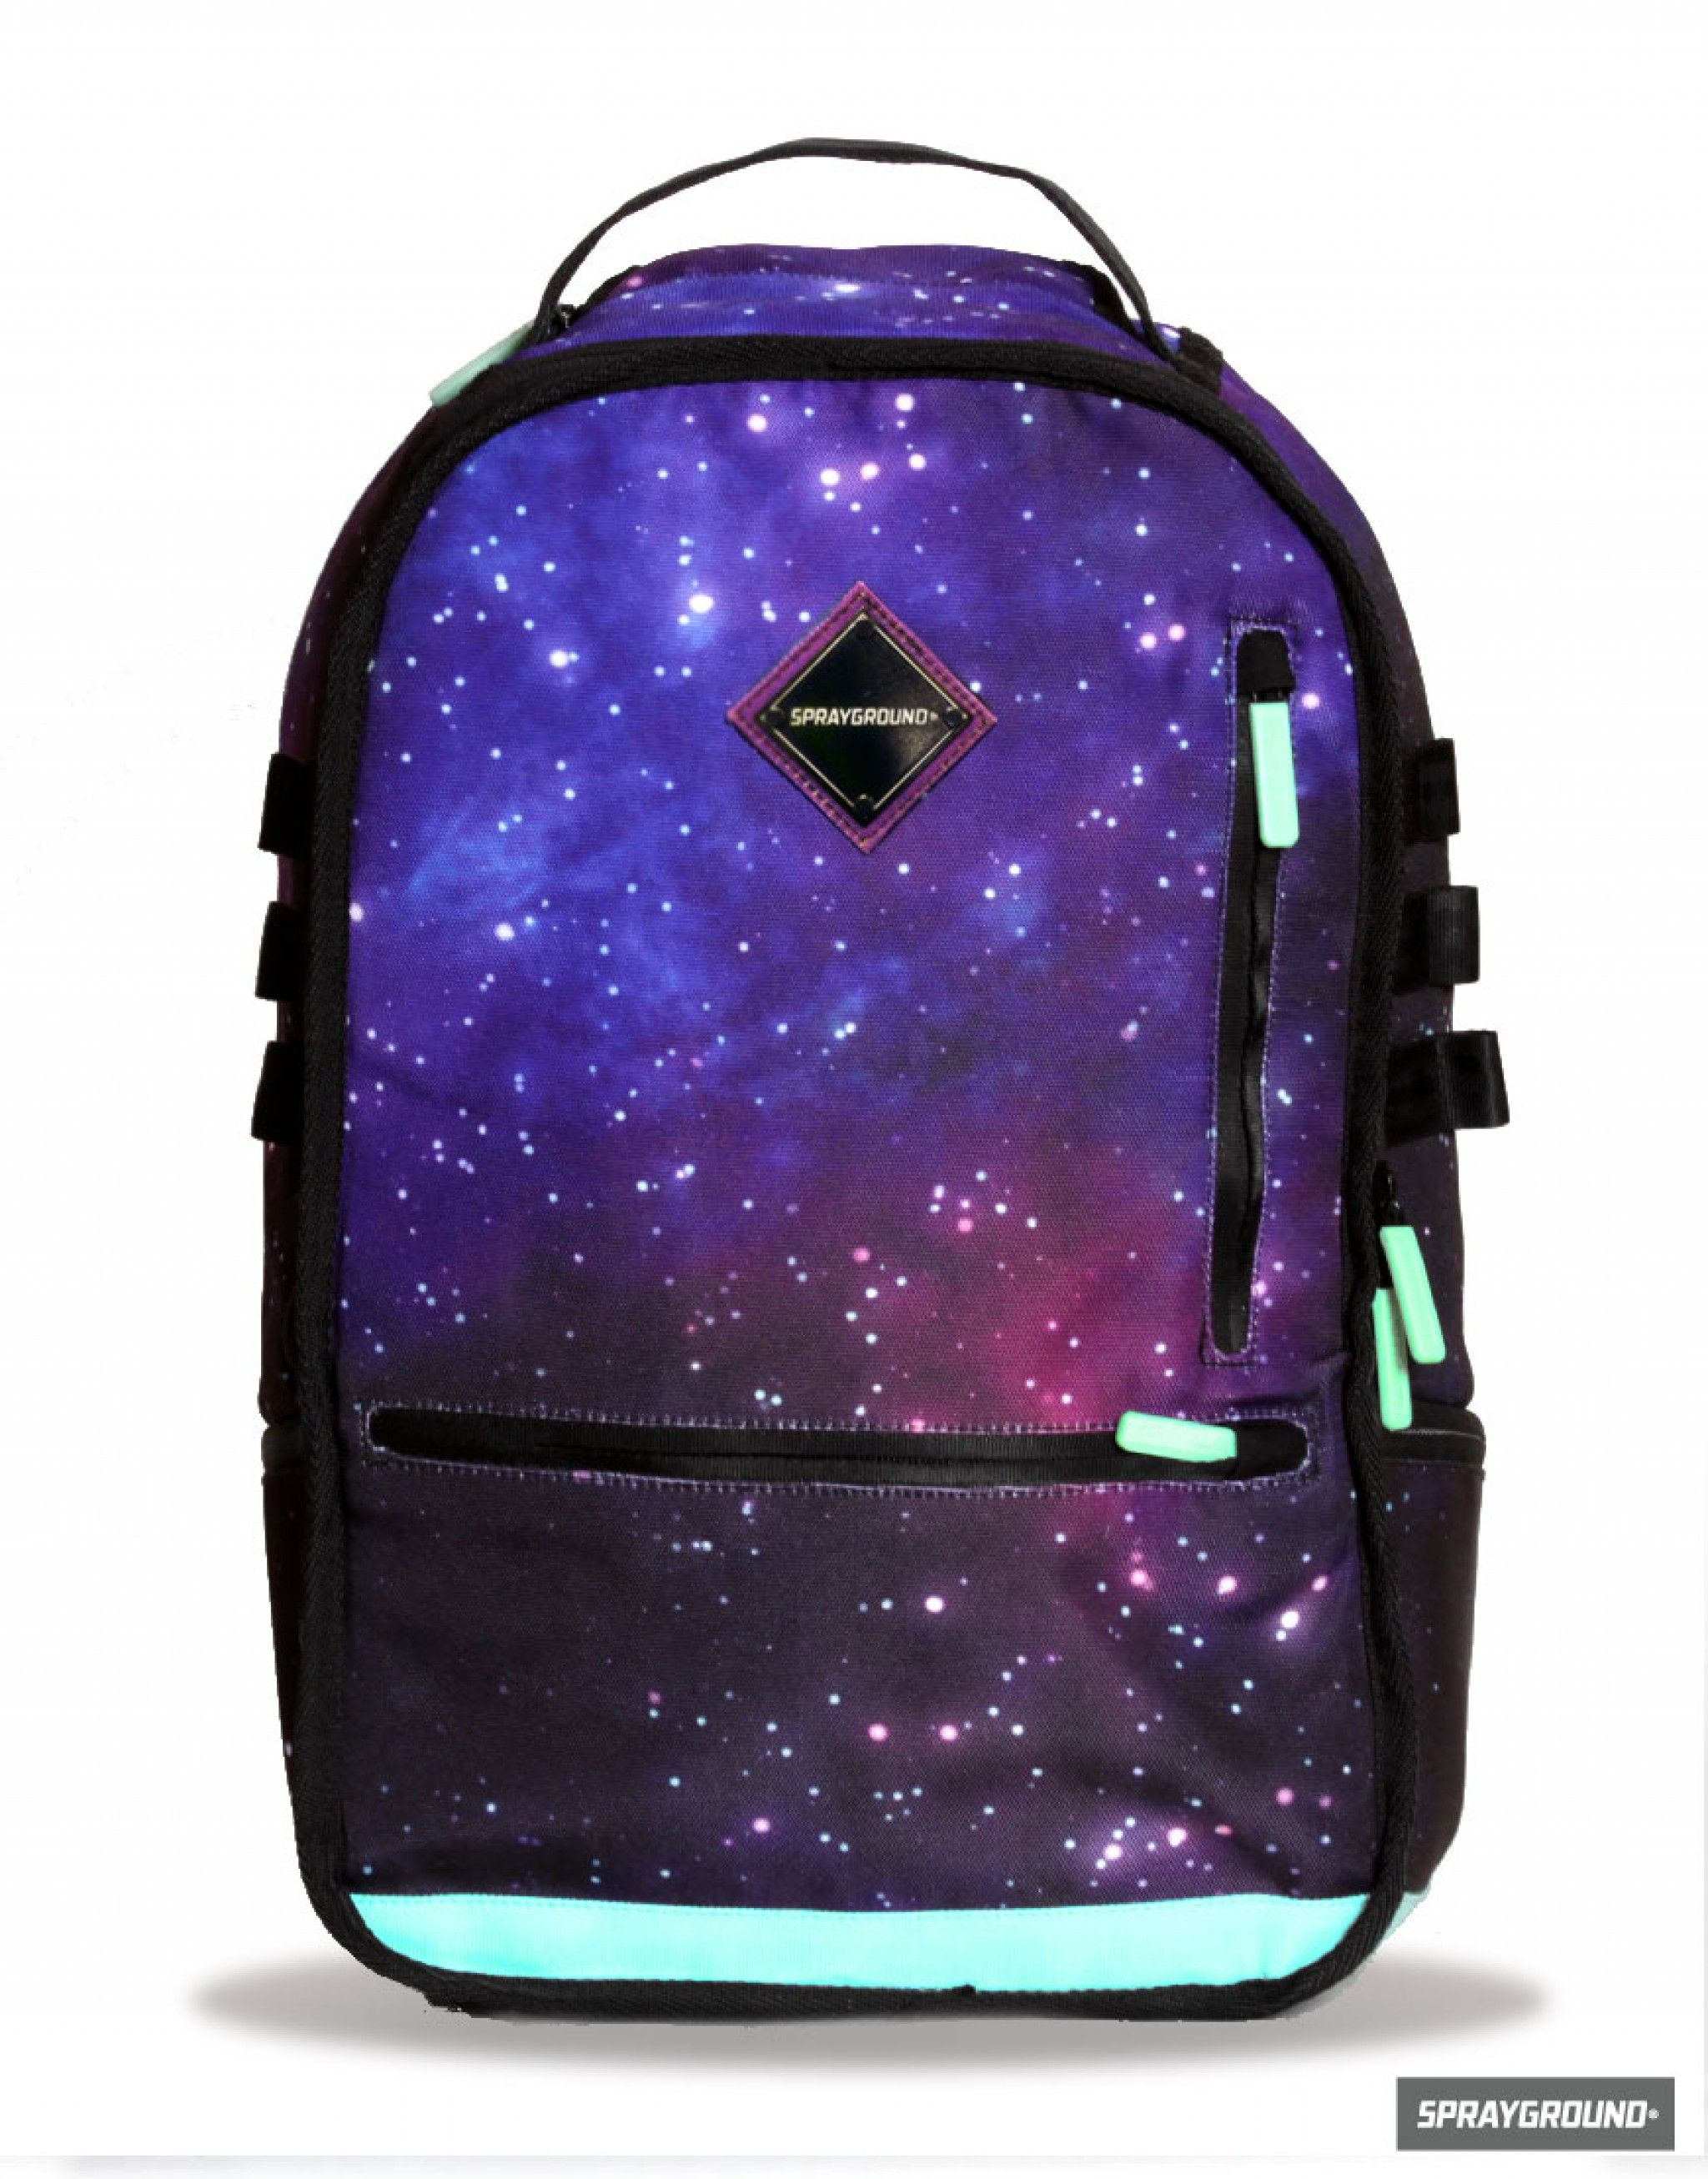 e9609aee5de The Galaxy Backpack